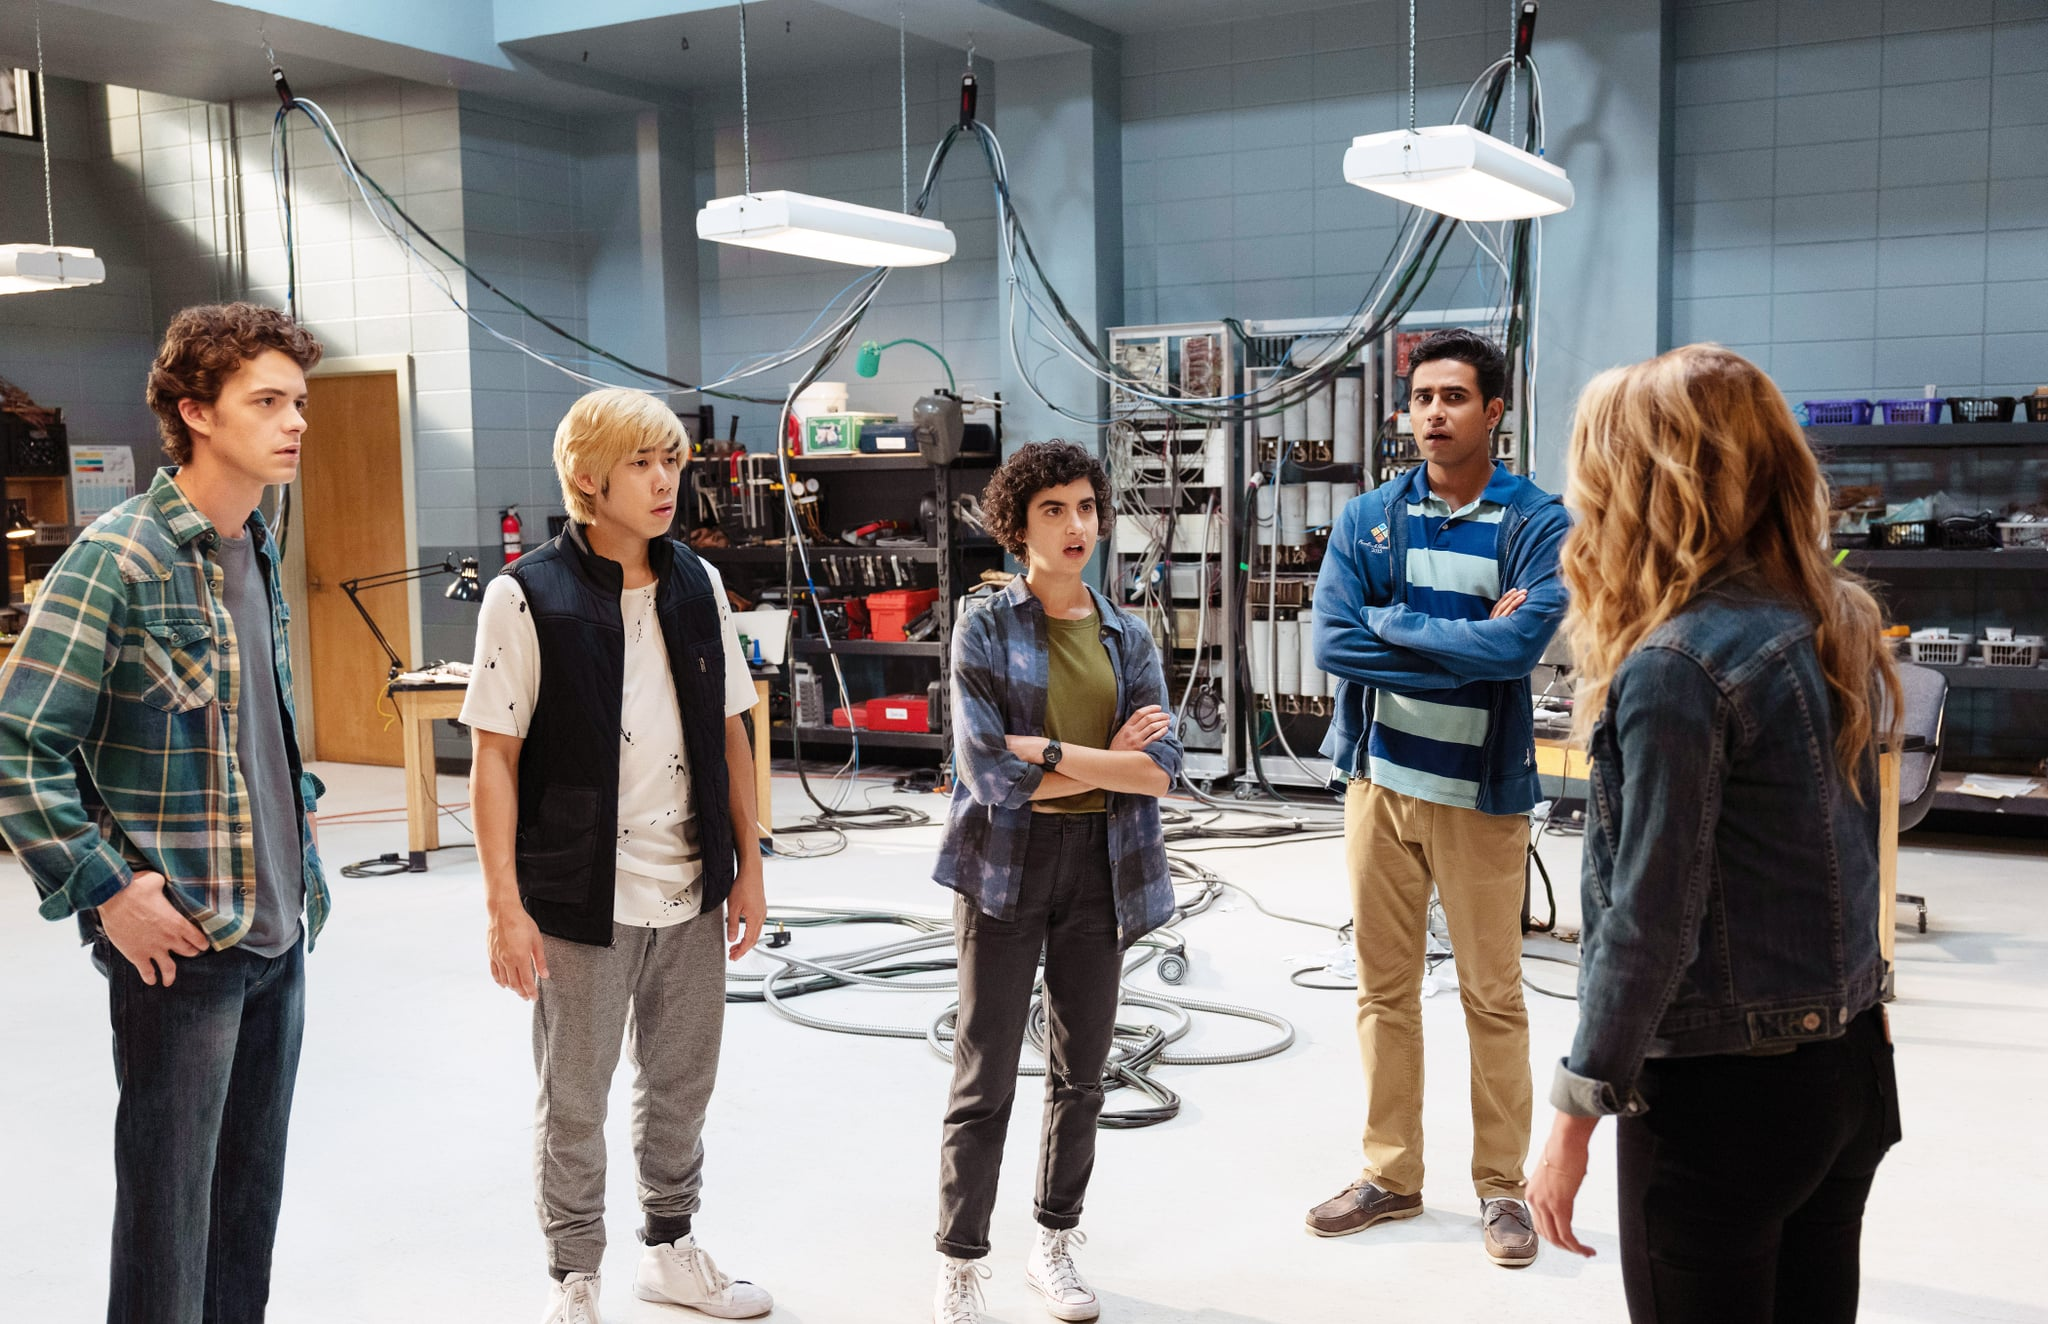 HAPPY DEATH DAY 2U, (aka HAPPY DEATH DAY TO YOU), from left: Israel Broussard, Phi Vu, Sarah Yarkin, Suraj Sharma, Jessica Rothe (back turned), 2019. ph: Michele K. Short /  Universal /Courtesy Everett Collection